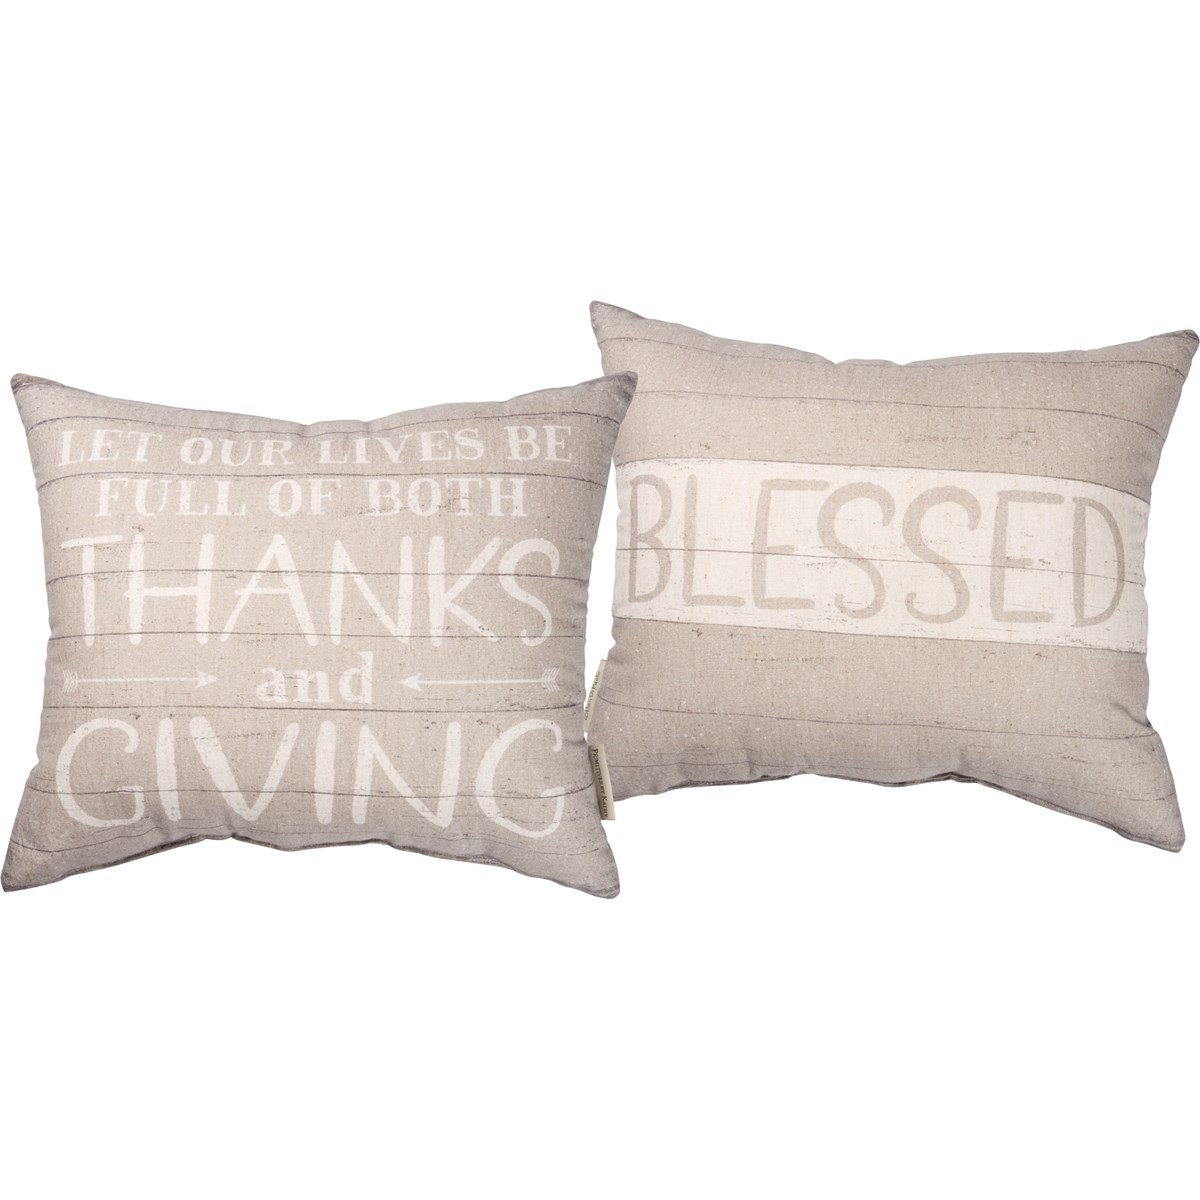 "Pillow - Lives Full Of Thanks And Giving - 16"" x 14"" - Cotton, Linen"